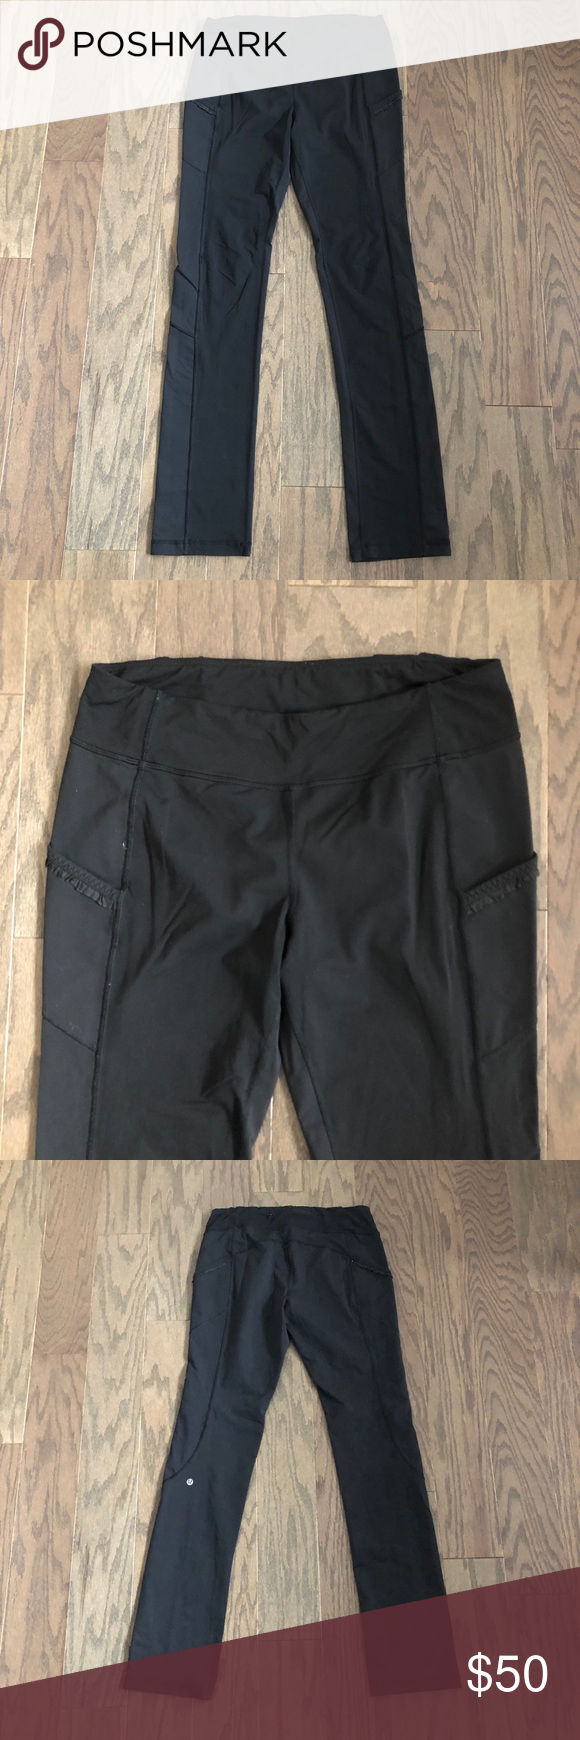 2b65fb8be9c68 Lululemon Run: Bright At Night Pant Leggings Very good condition, missing  the reflective section